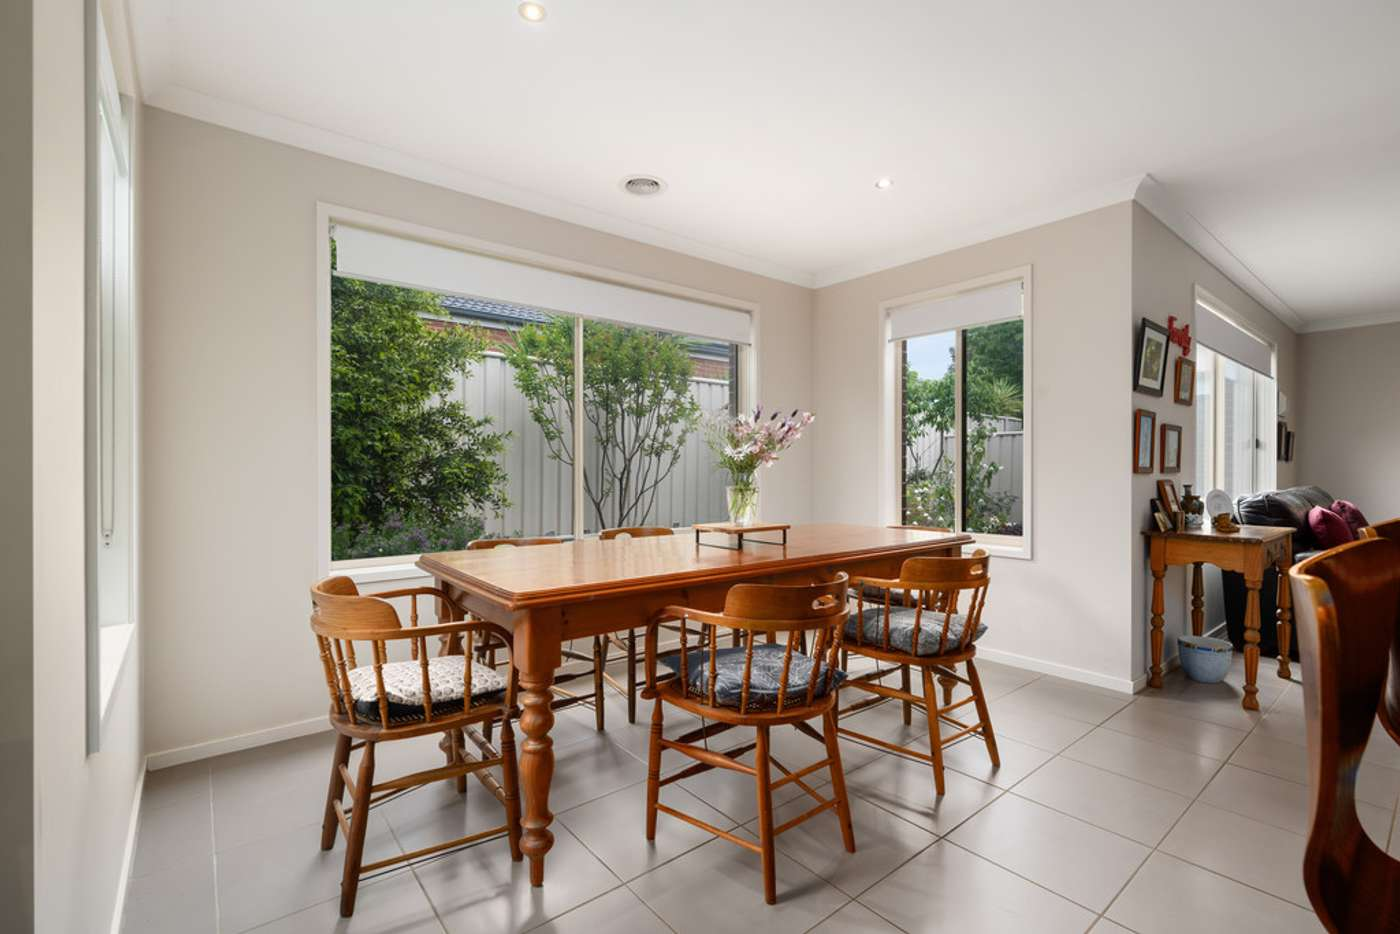 Sixth view of Homely house listing, 39 Victoria Cross Parade, Wodonga VIC 3690